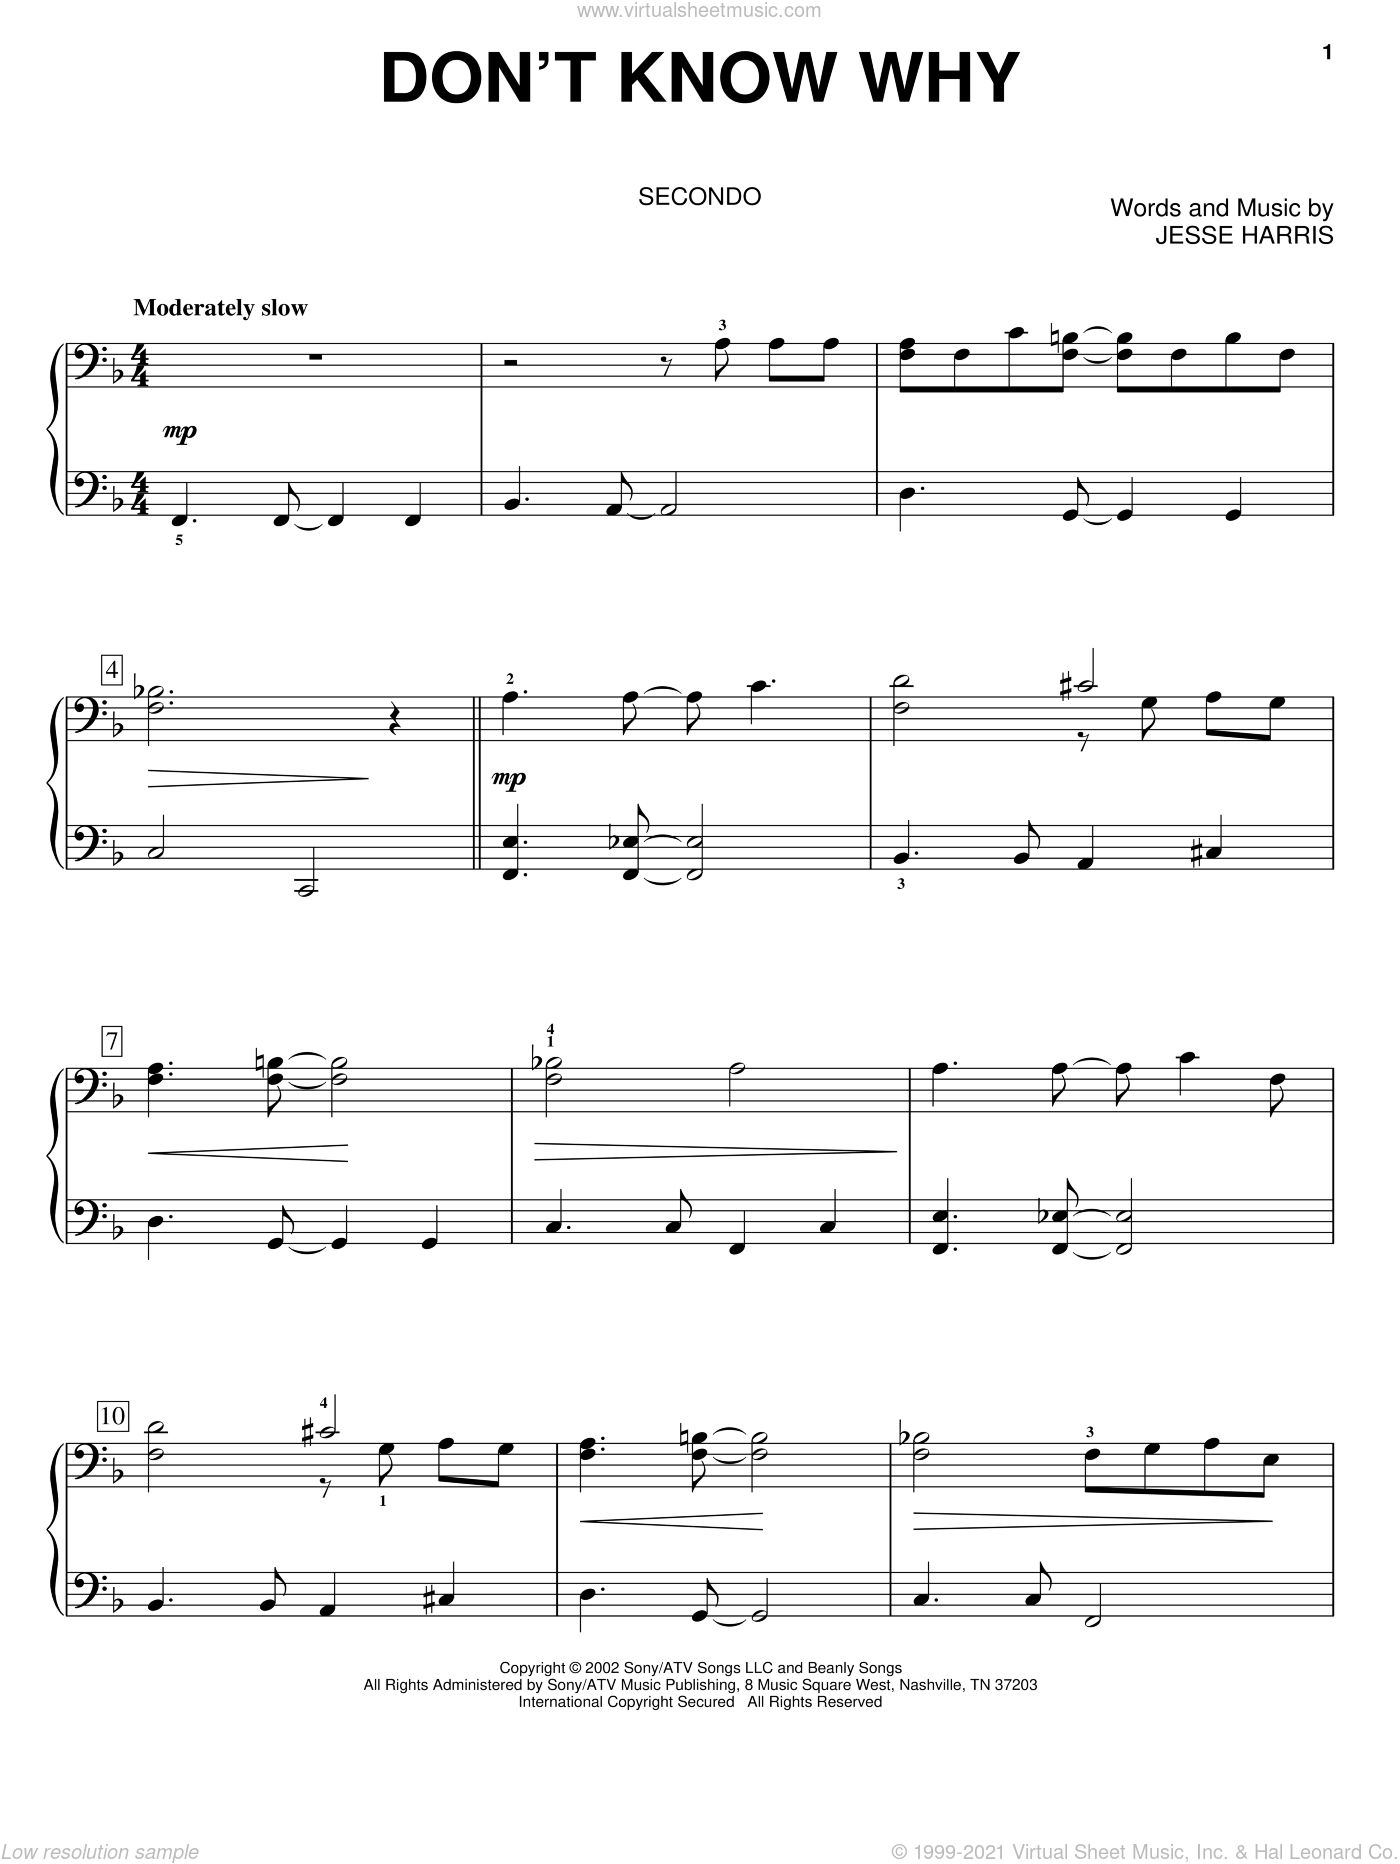 Don't Know Why sheet music for piano four hands (duets) by Jesse Harris and Norah Jones. Score Image Preview.